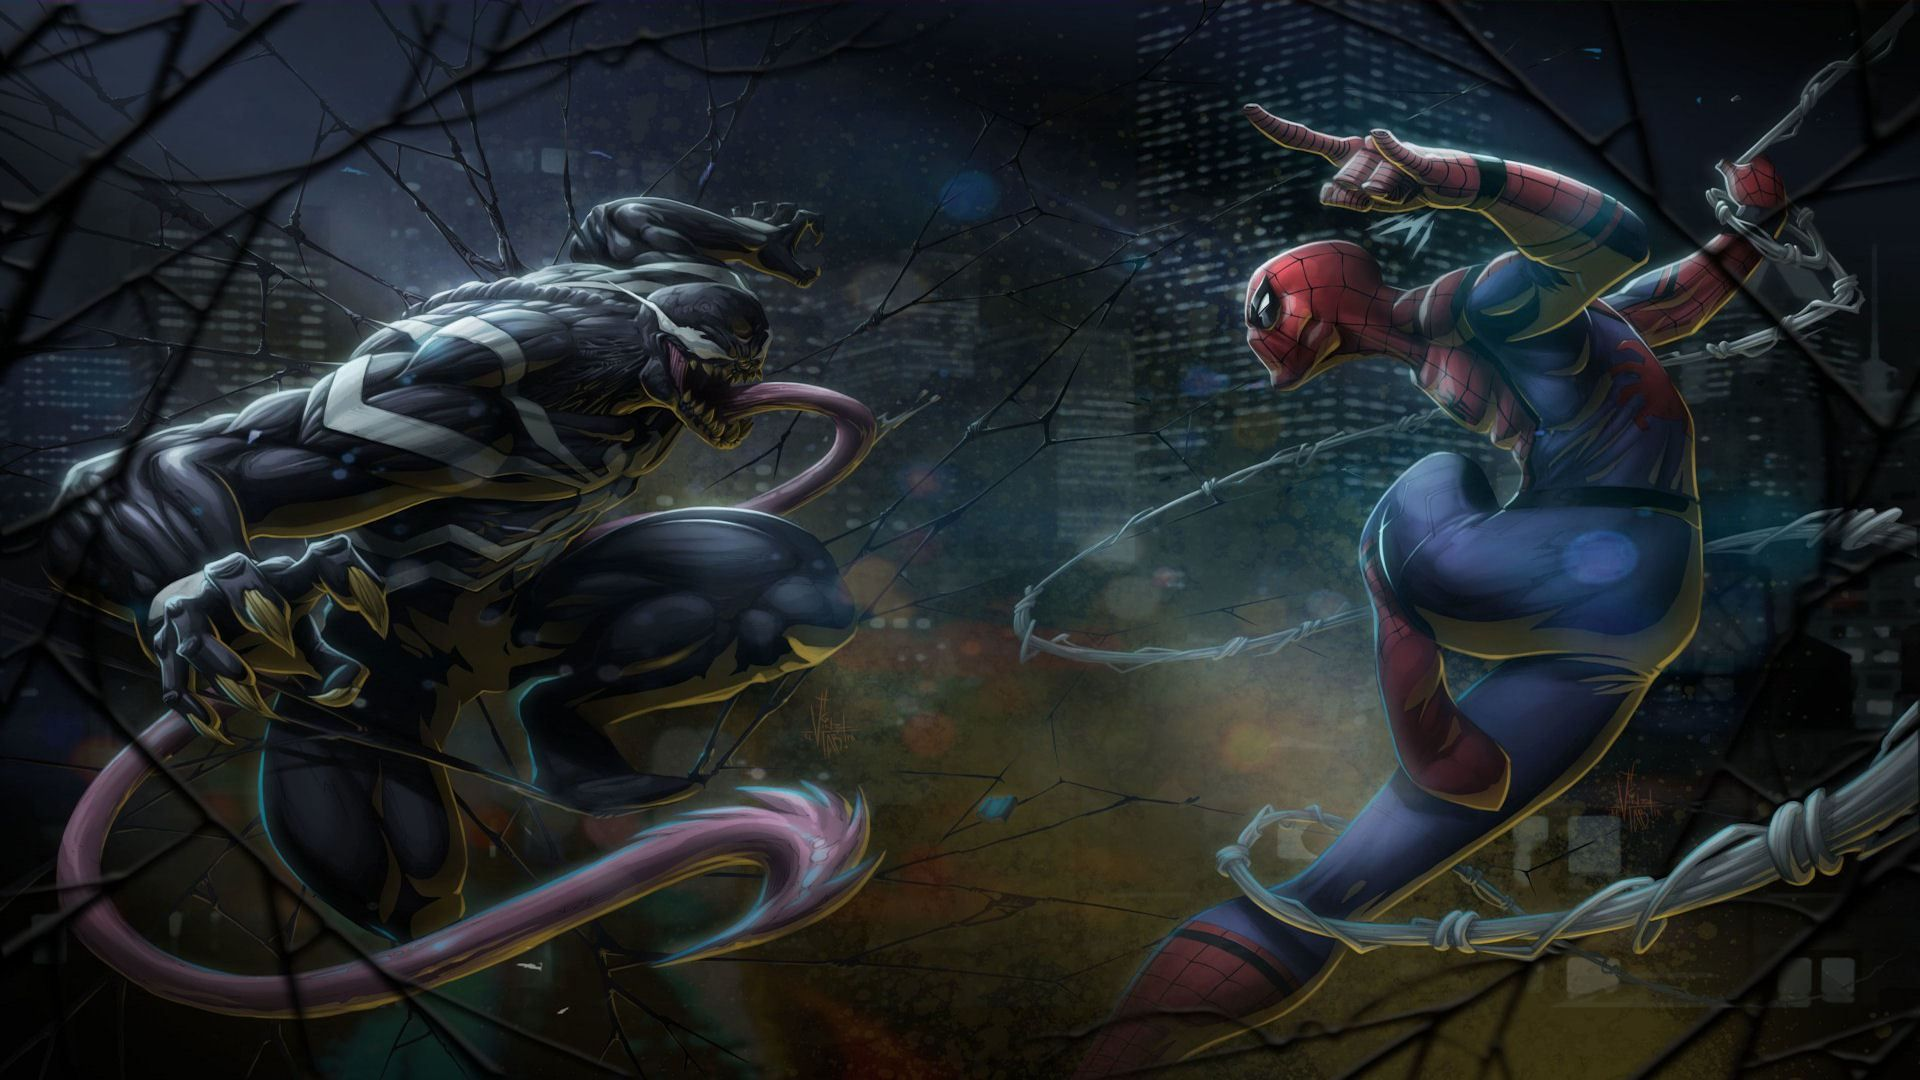 Cool Marvel Wallpapers Hd 2 Epic Heroes Select 45 X Image Gallery Marvel Wallpaper Marvel Comics Art Deadpool Hd Wallpaper